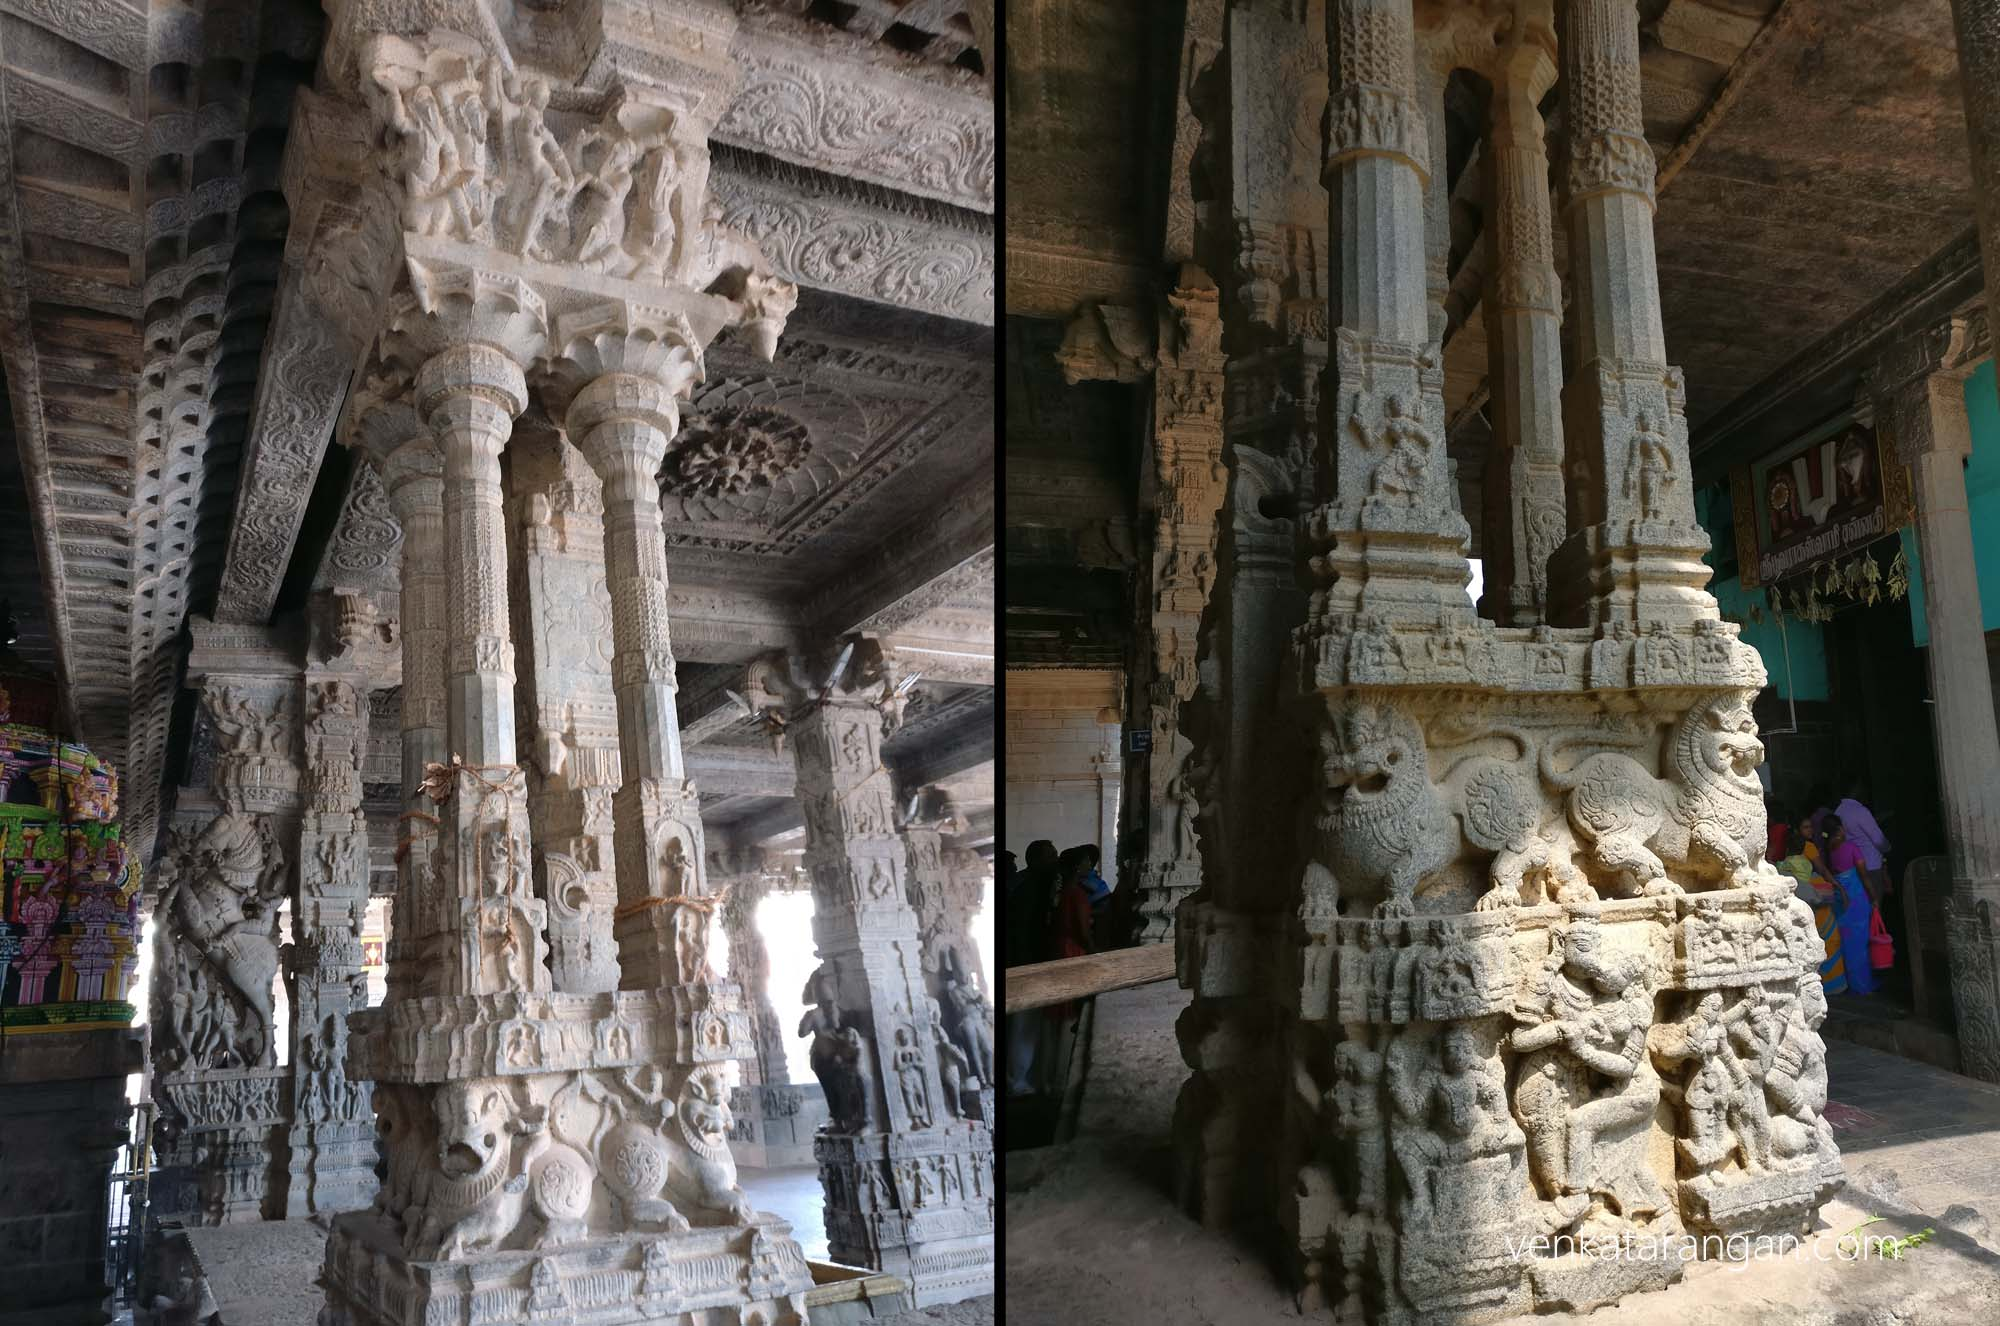 At every level of a pillar there are designs, in middle you can see mythical lions